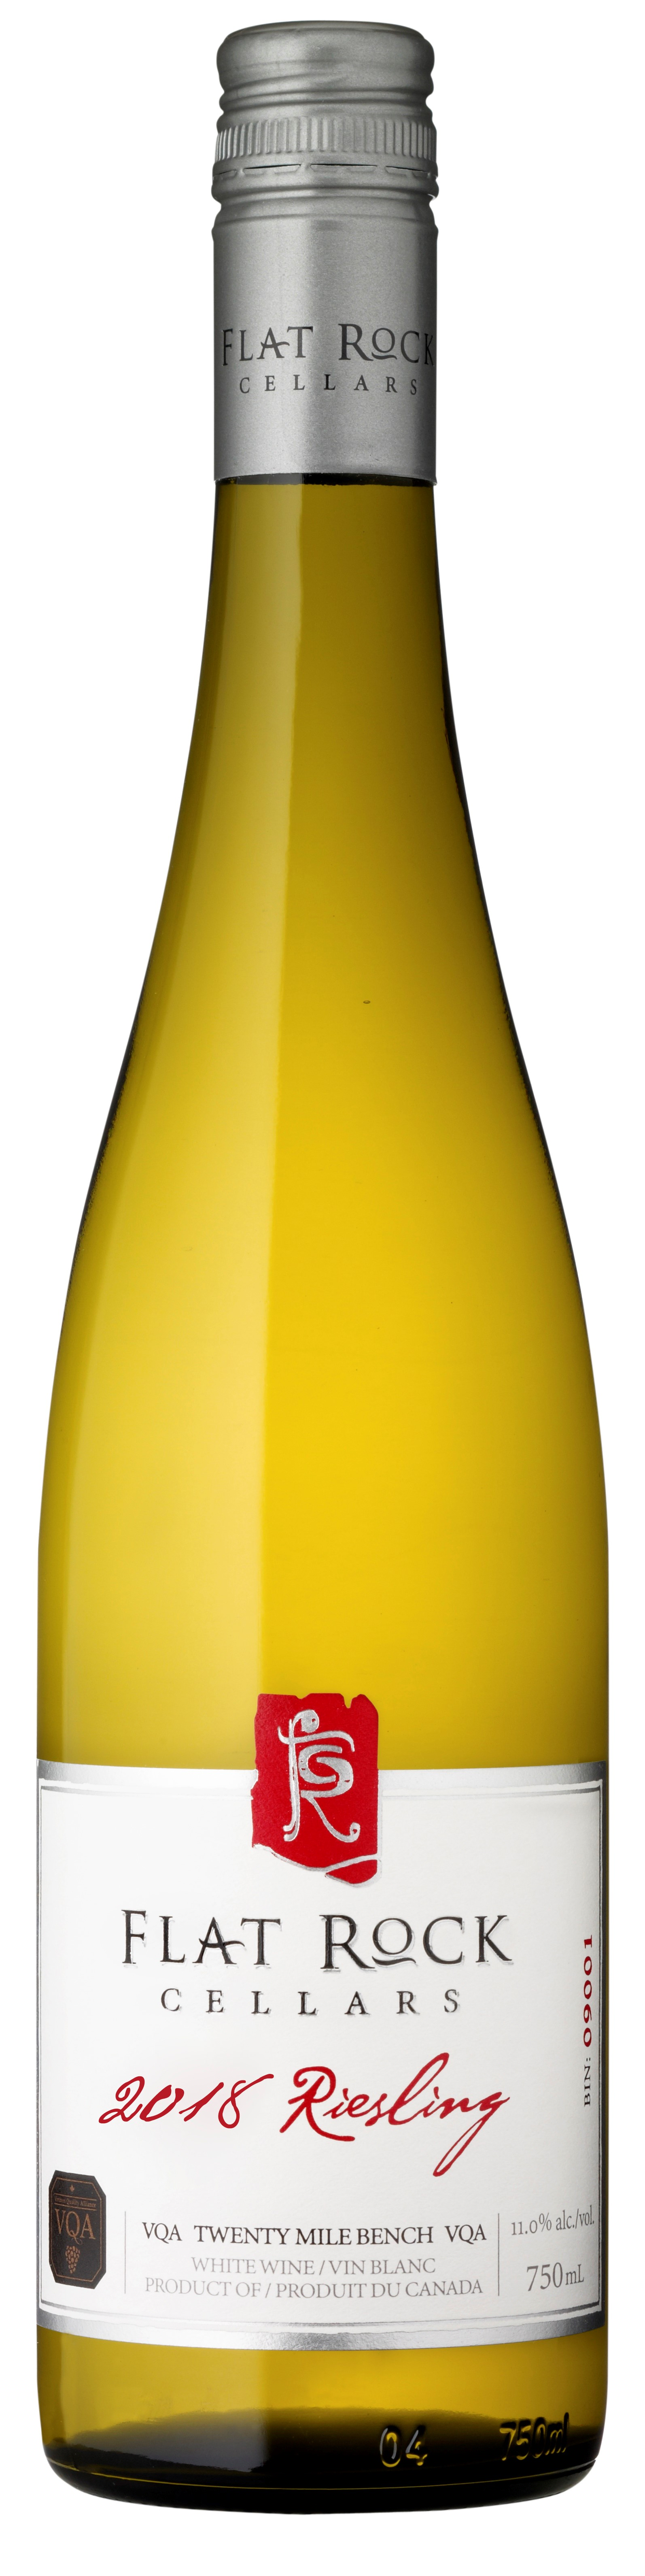 Product Image for 2018 Riesling